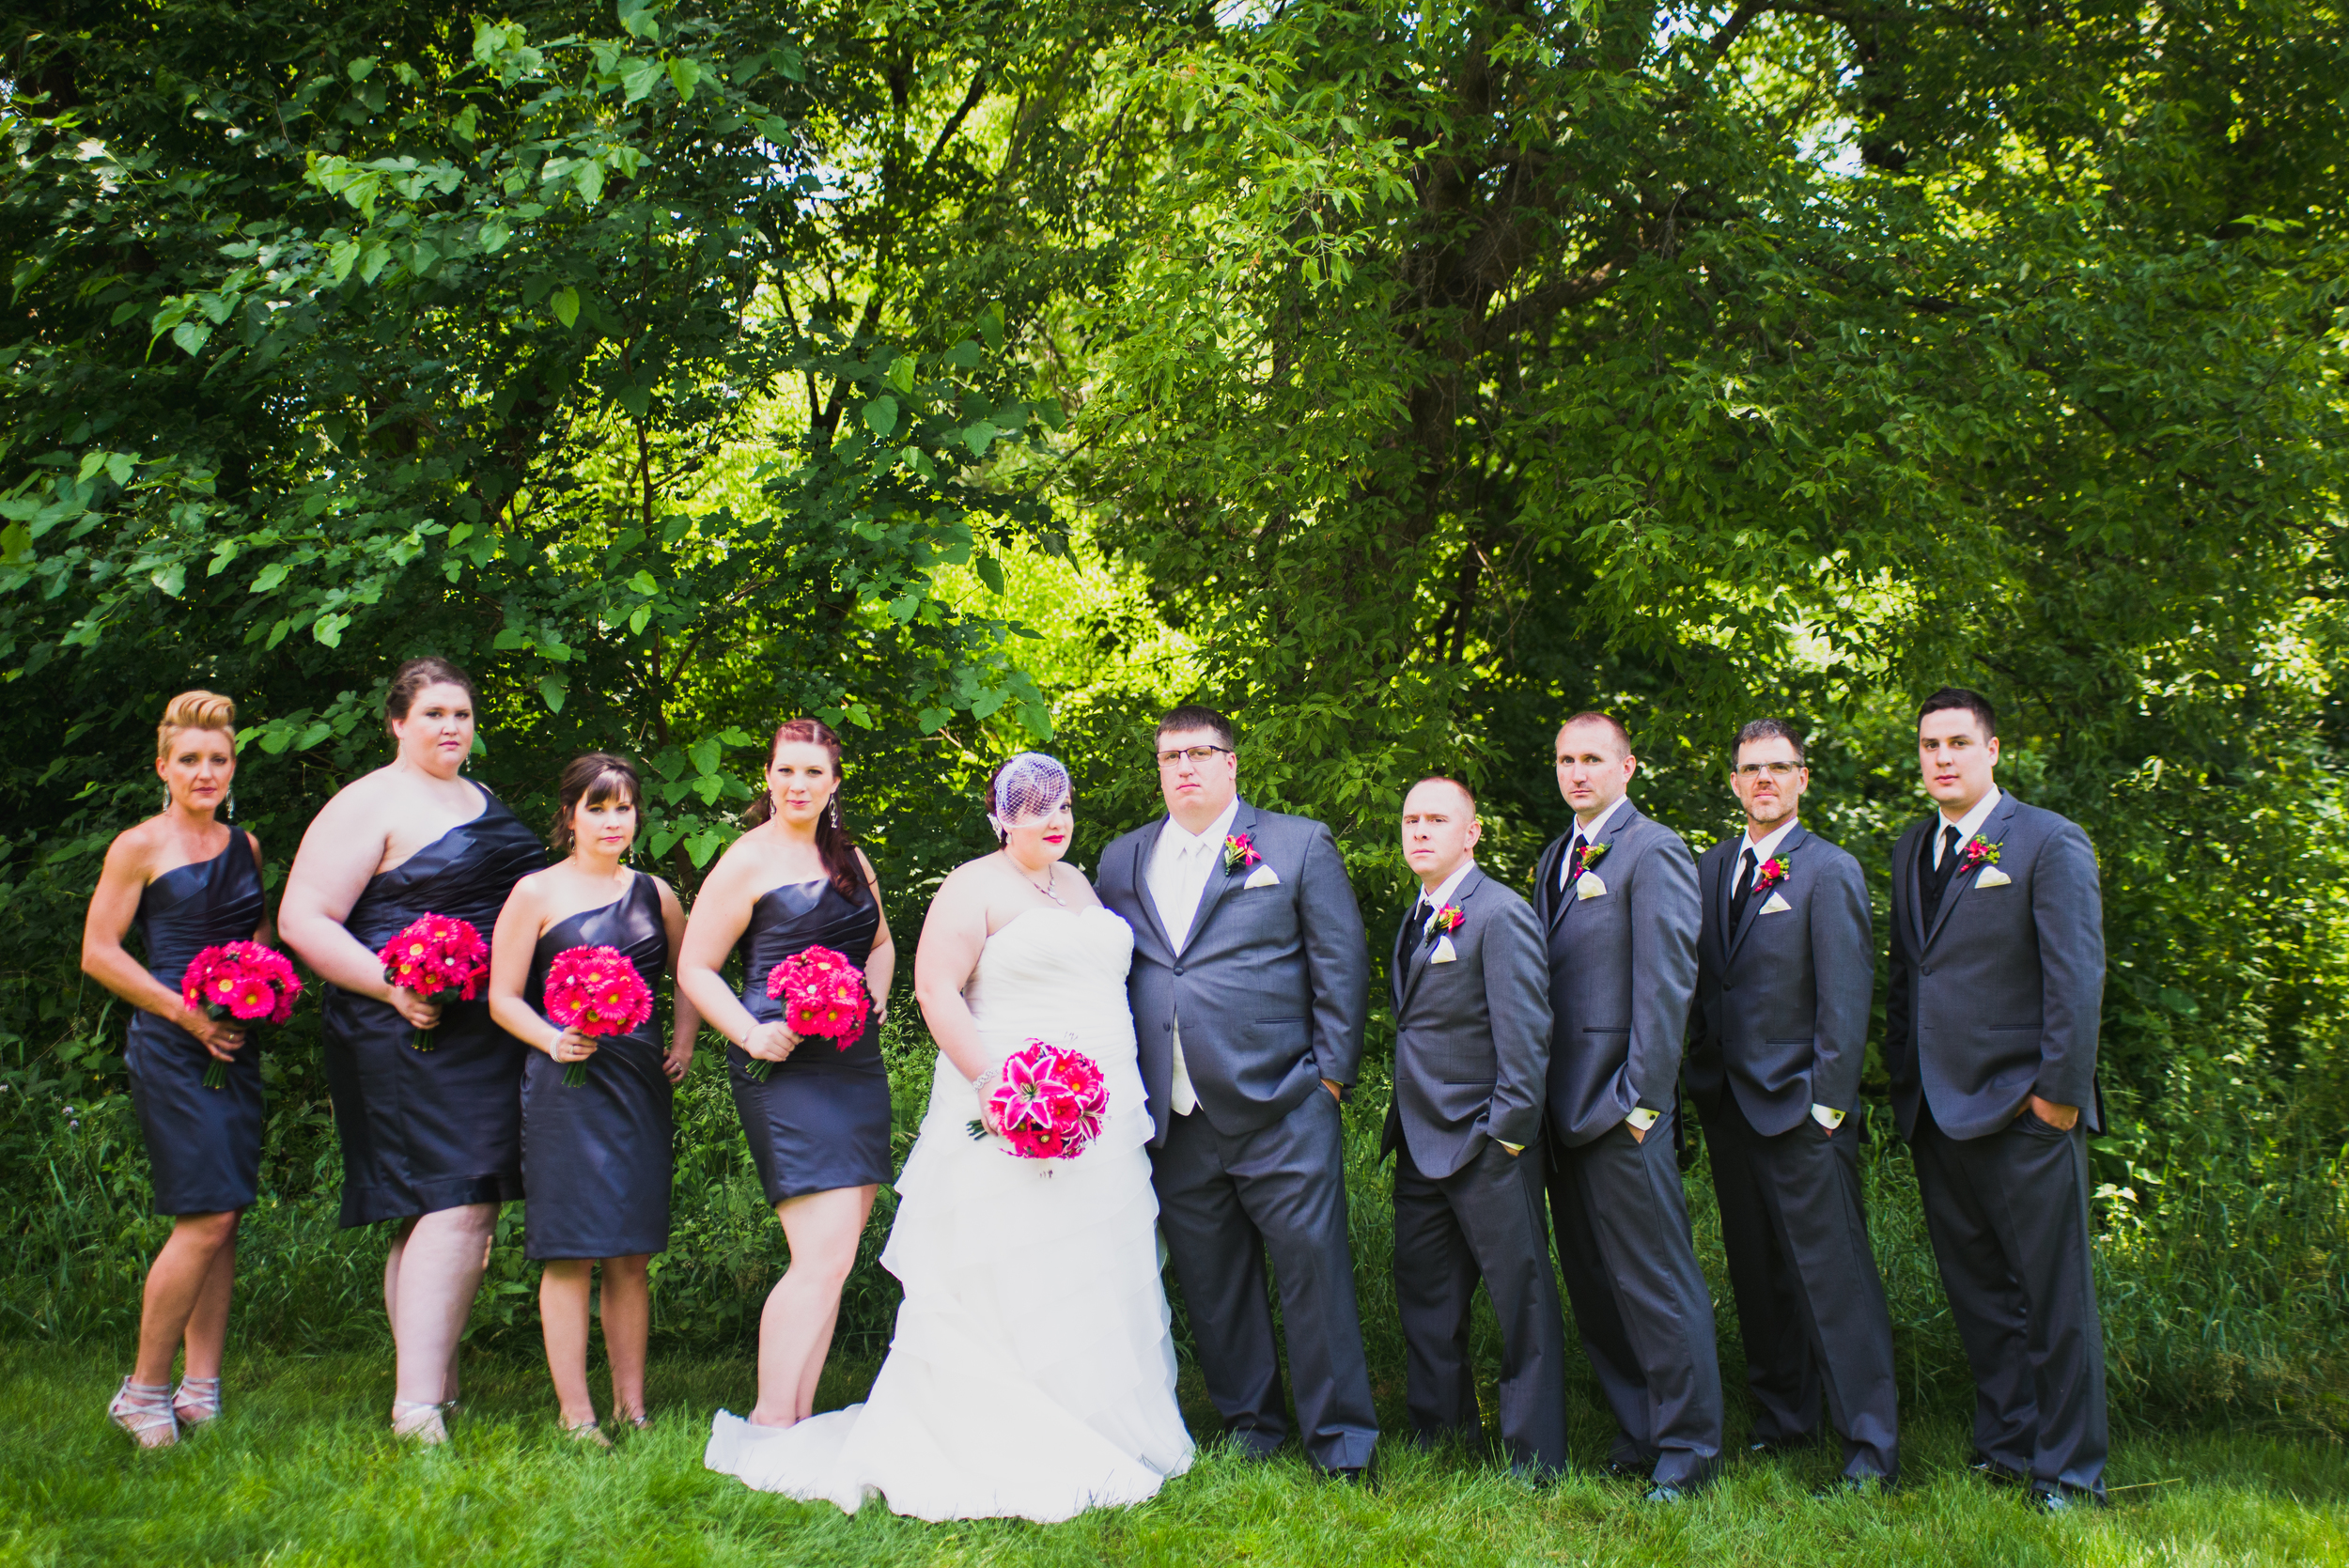 20150627McCarthyW.WeddingParty84.jpg